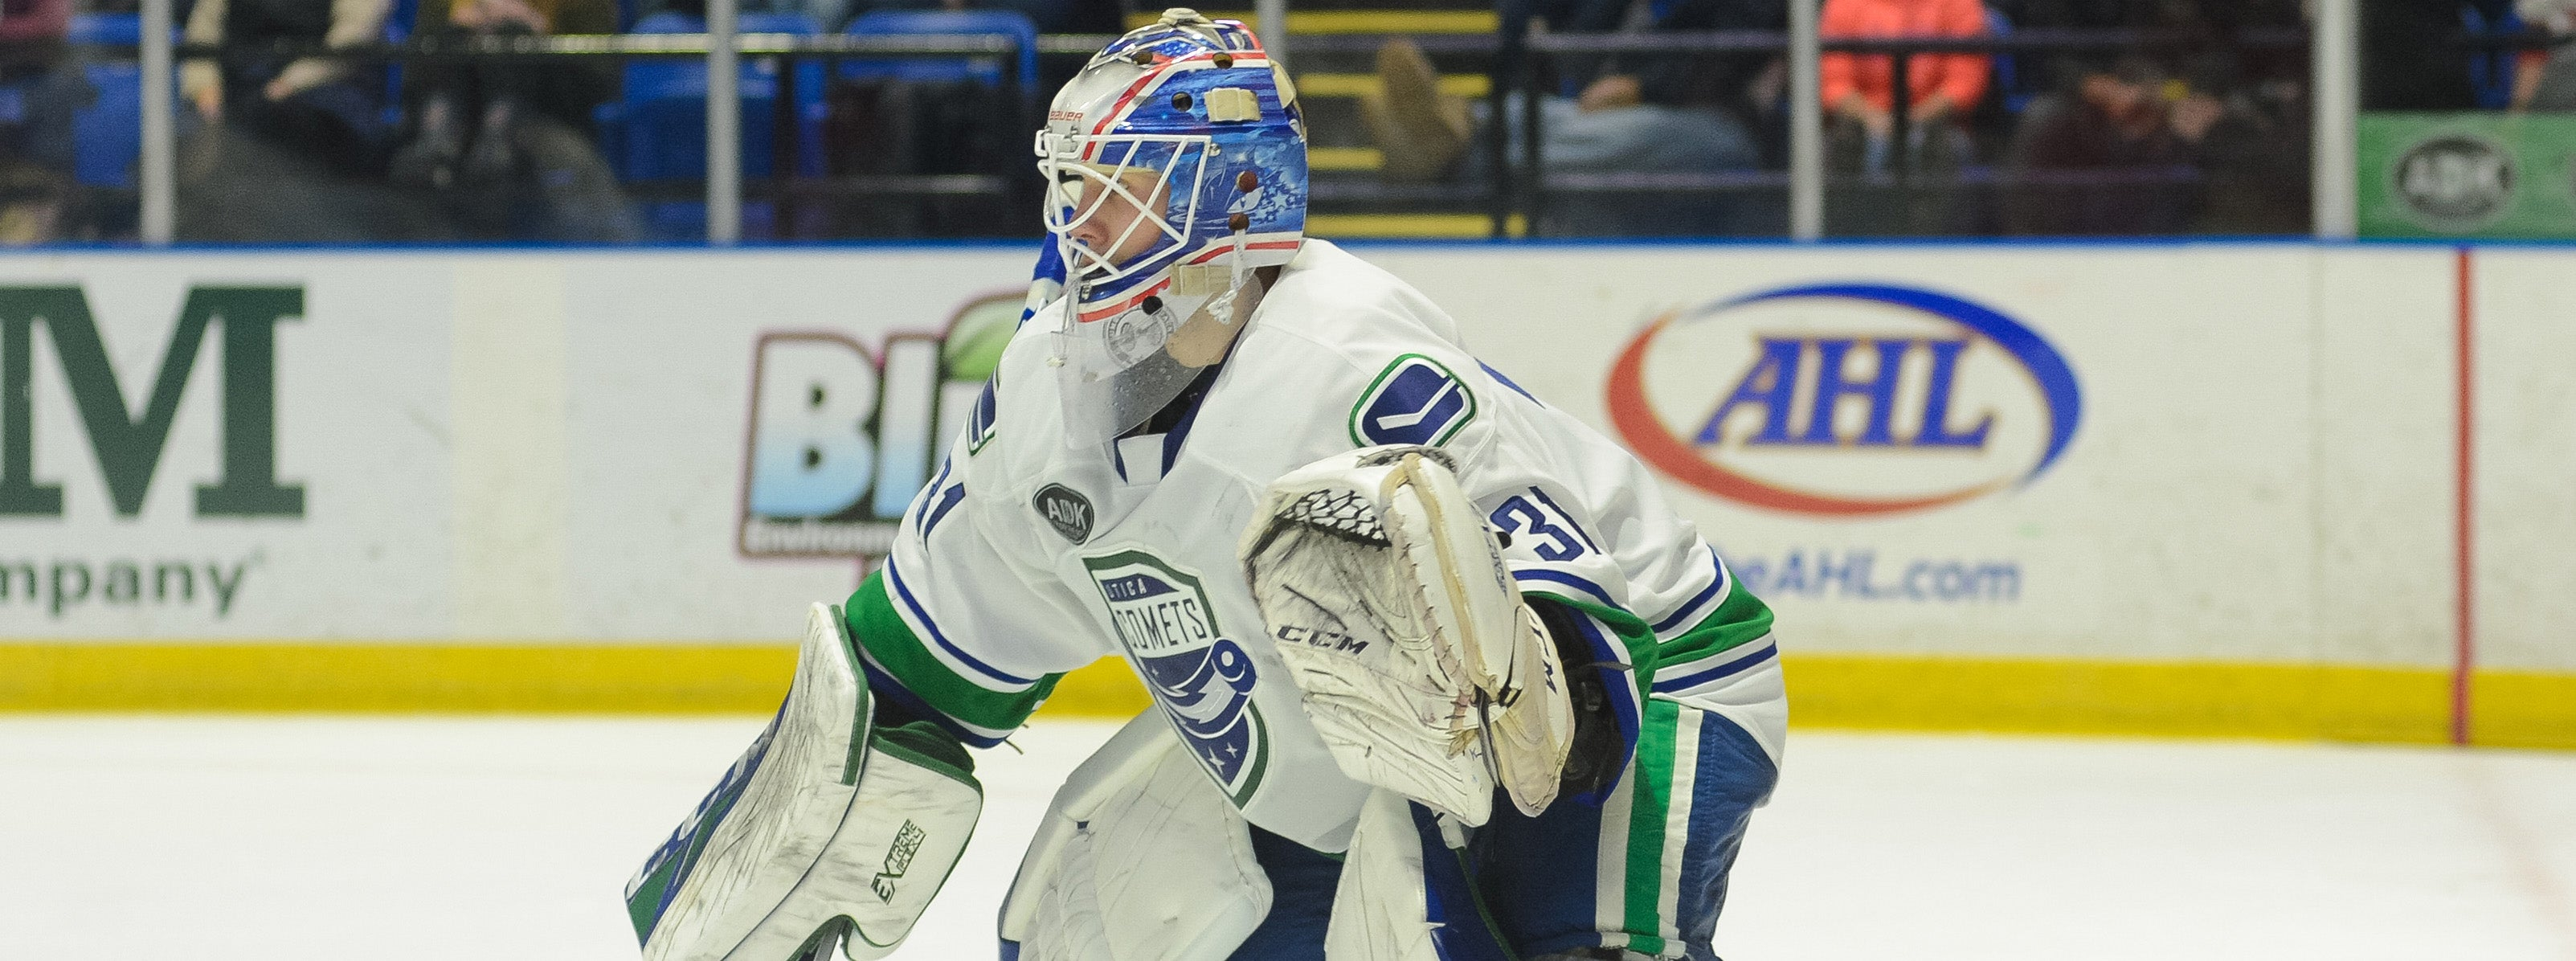 COMETS GO FOR SECOND STRAIGHT WIN OVER LAVAL